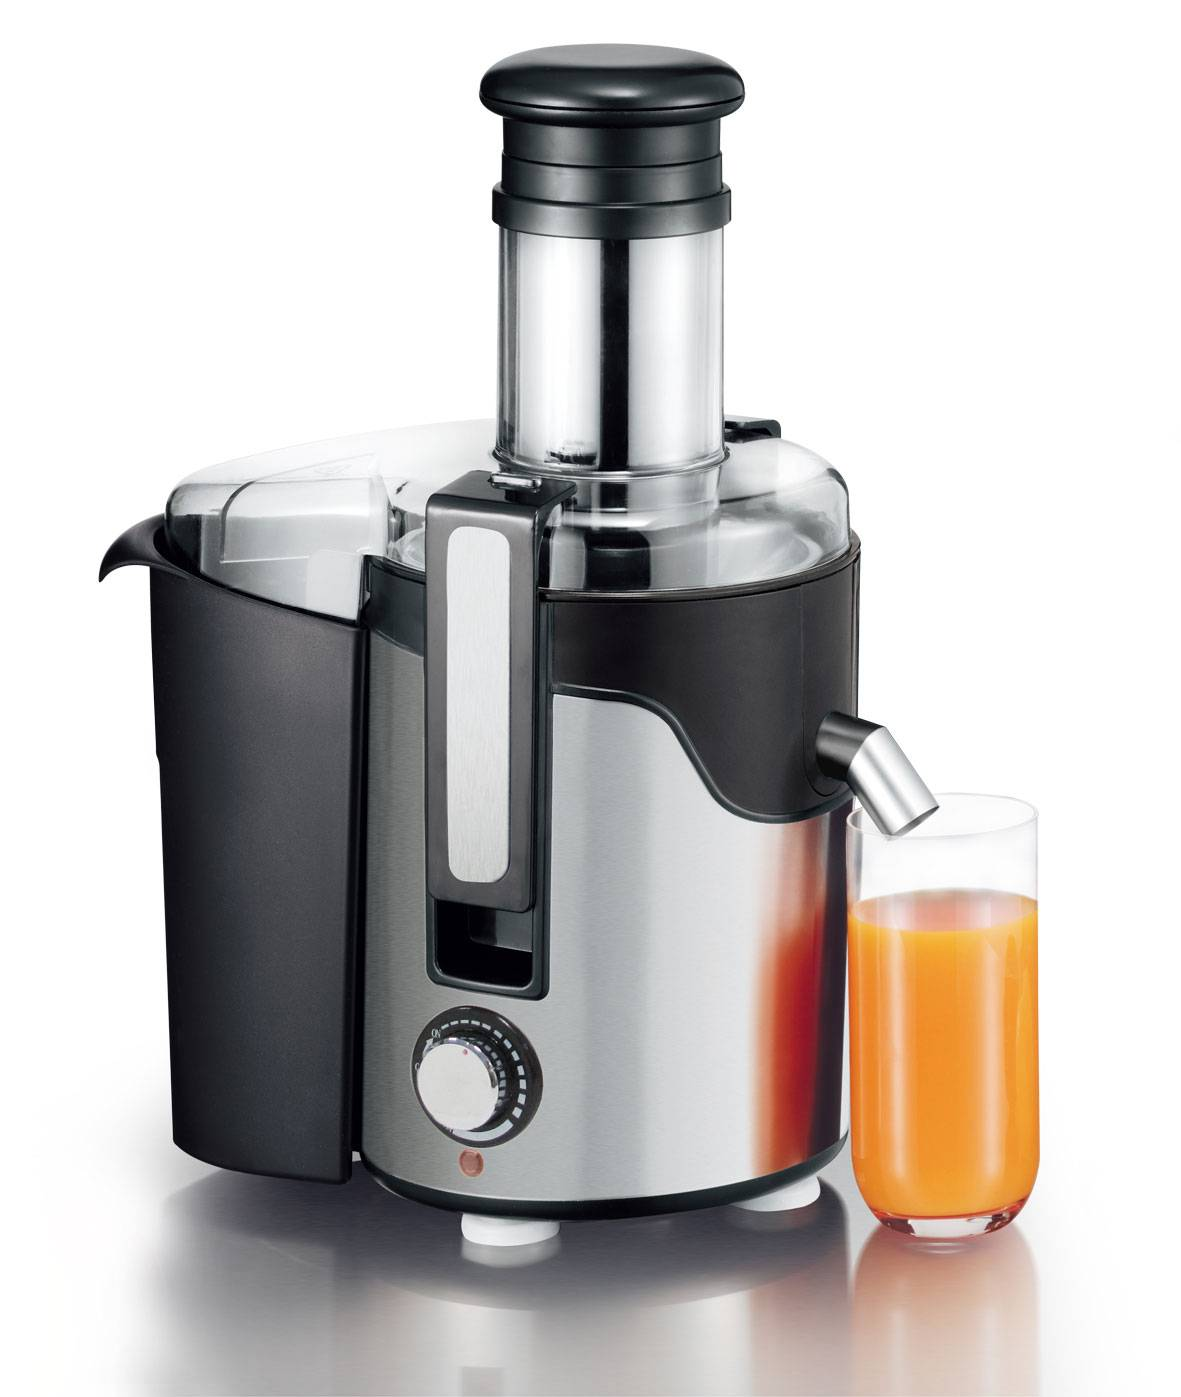 KP60SFK Powerful juicer from kavbao